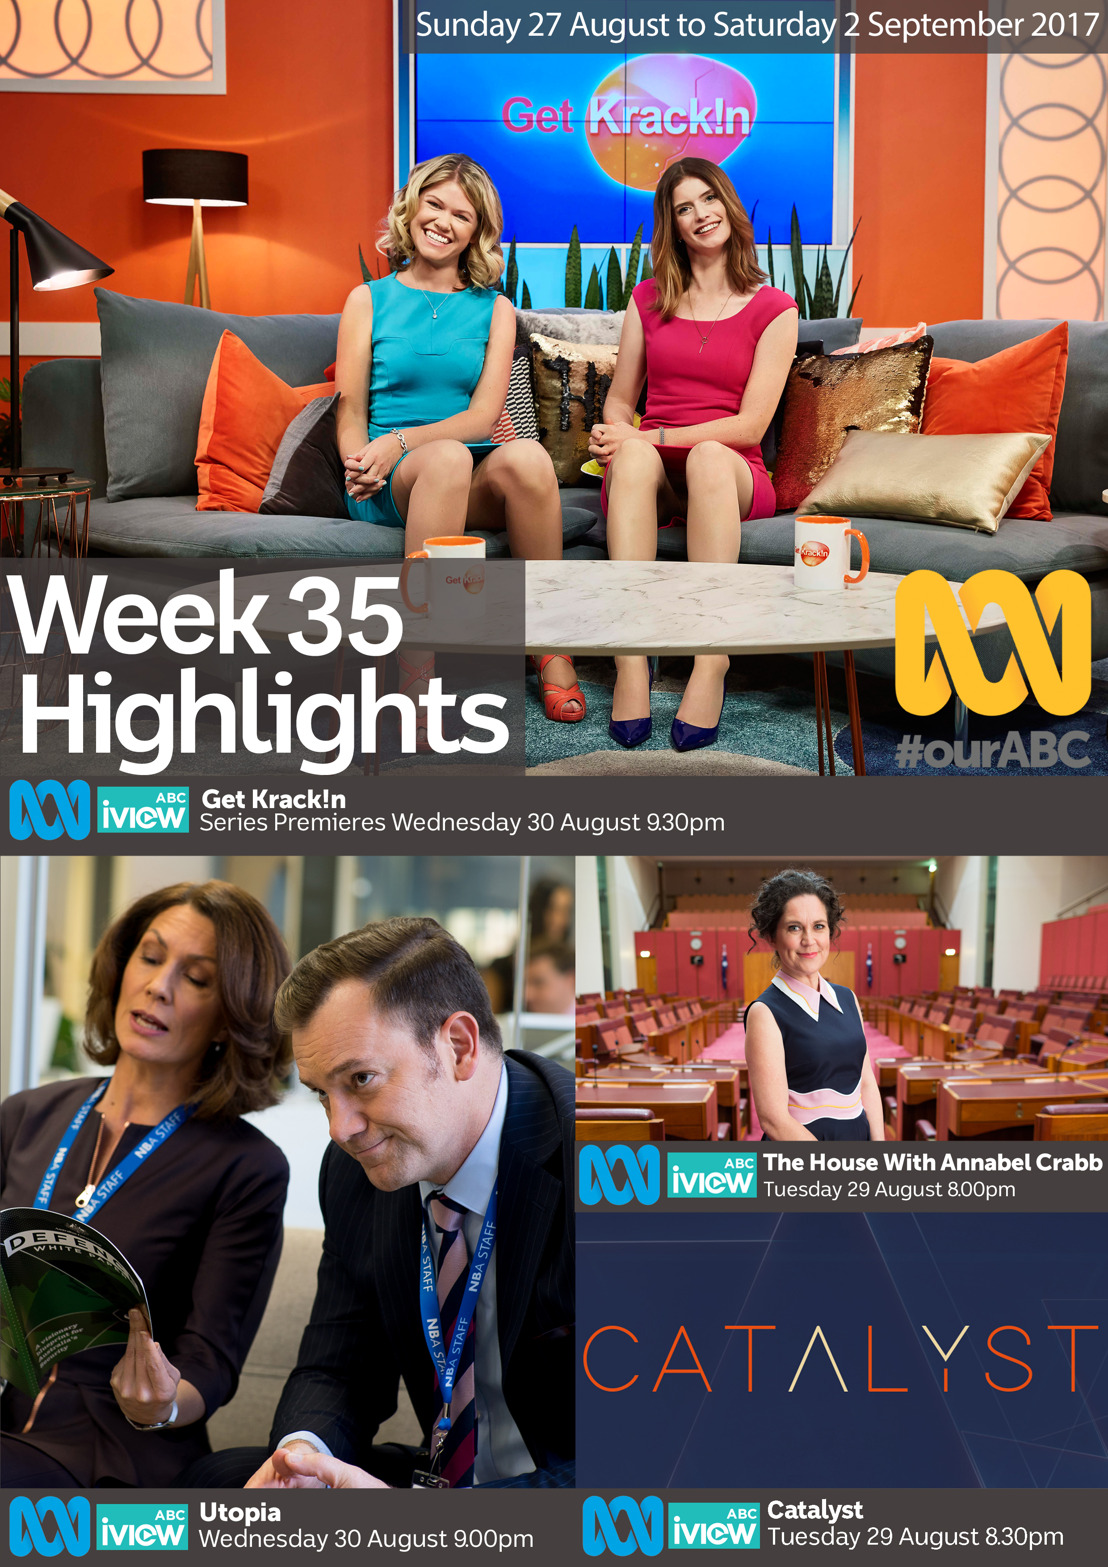 ABC Program Highlights - Week 35